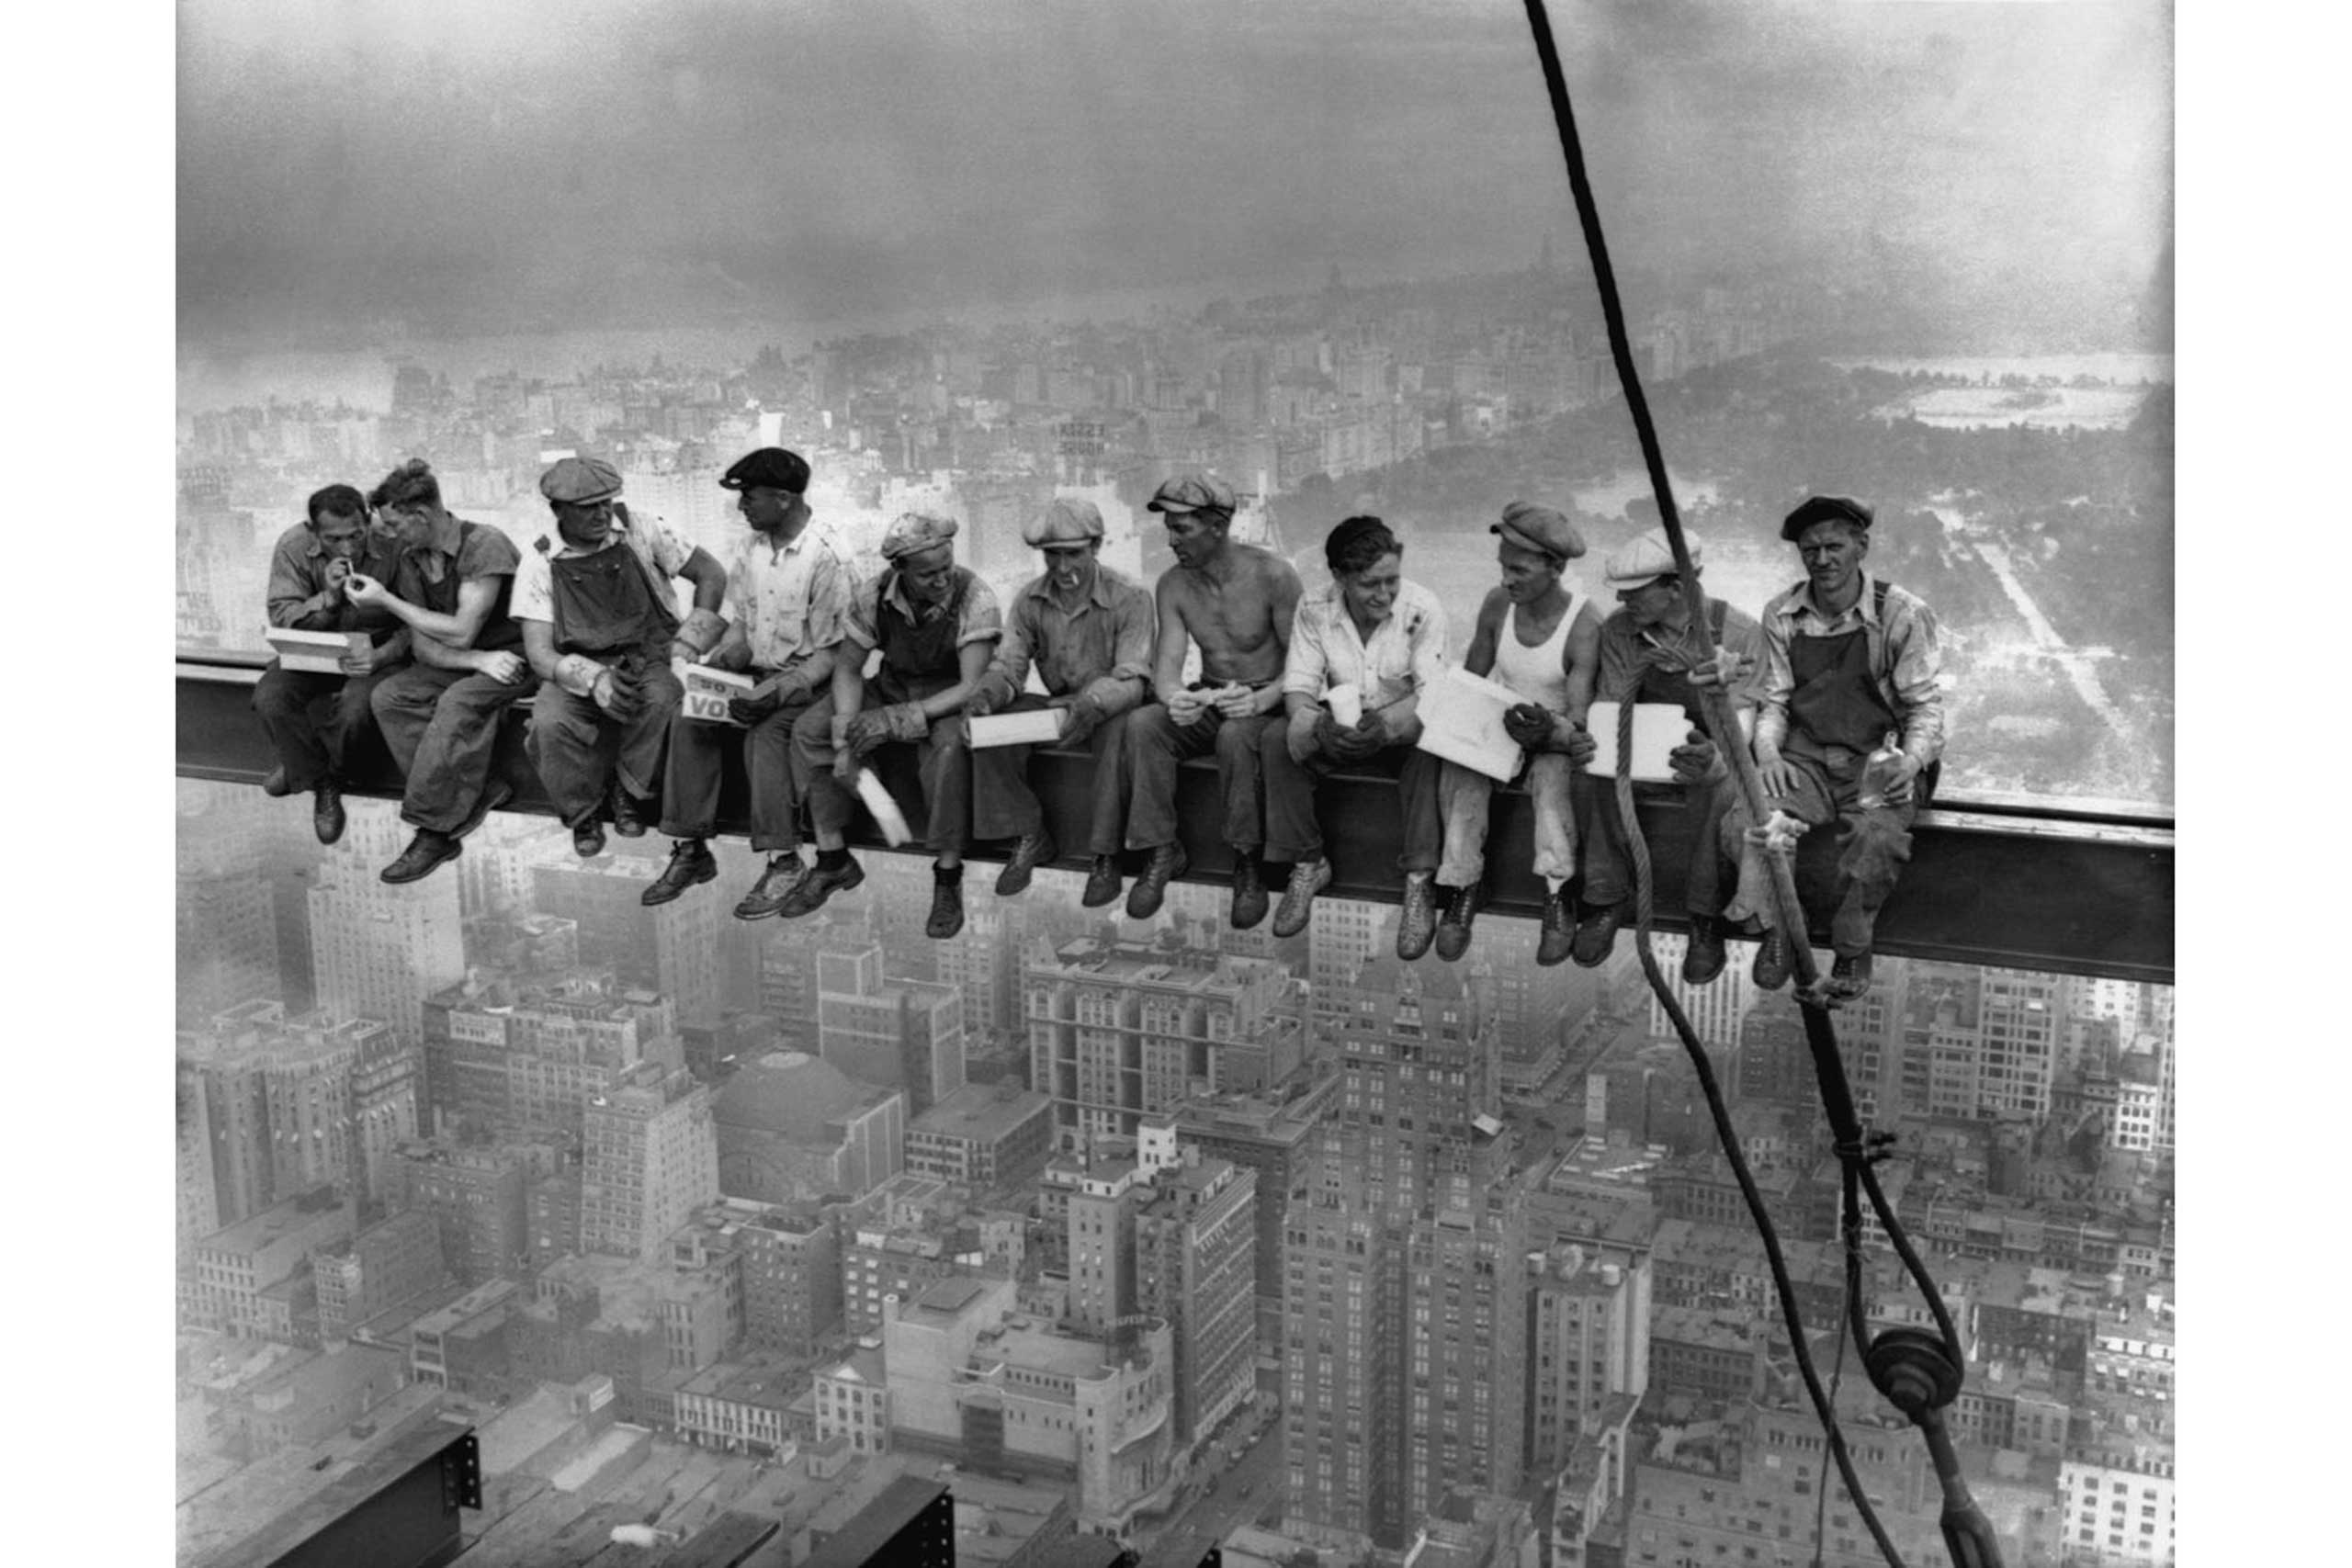 Construction workers eat their lunches atop a steel beam 800 feet above ground, at the building site of the RCA Building in Rockefeller Center in New York, Sept. 29, 1932.